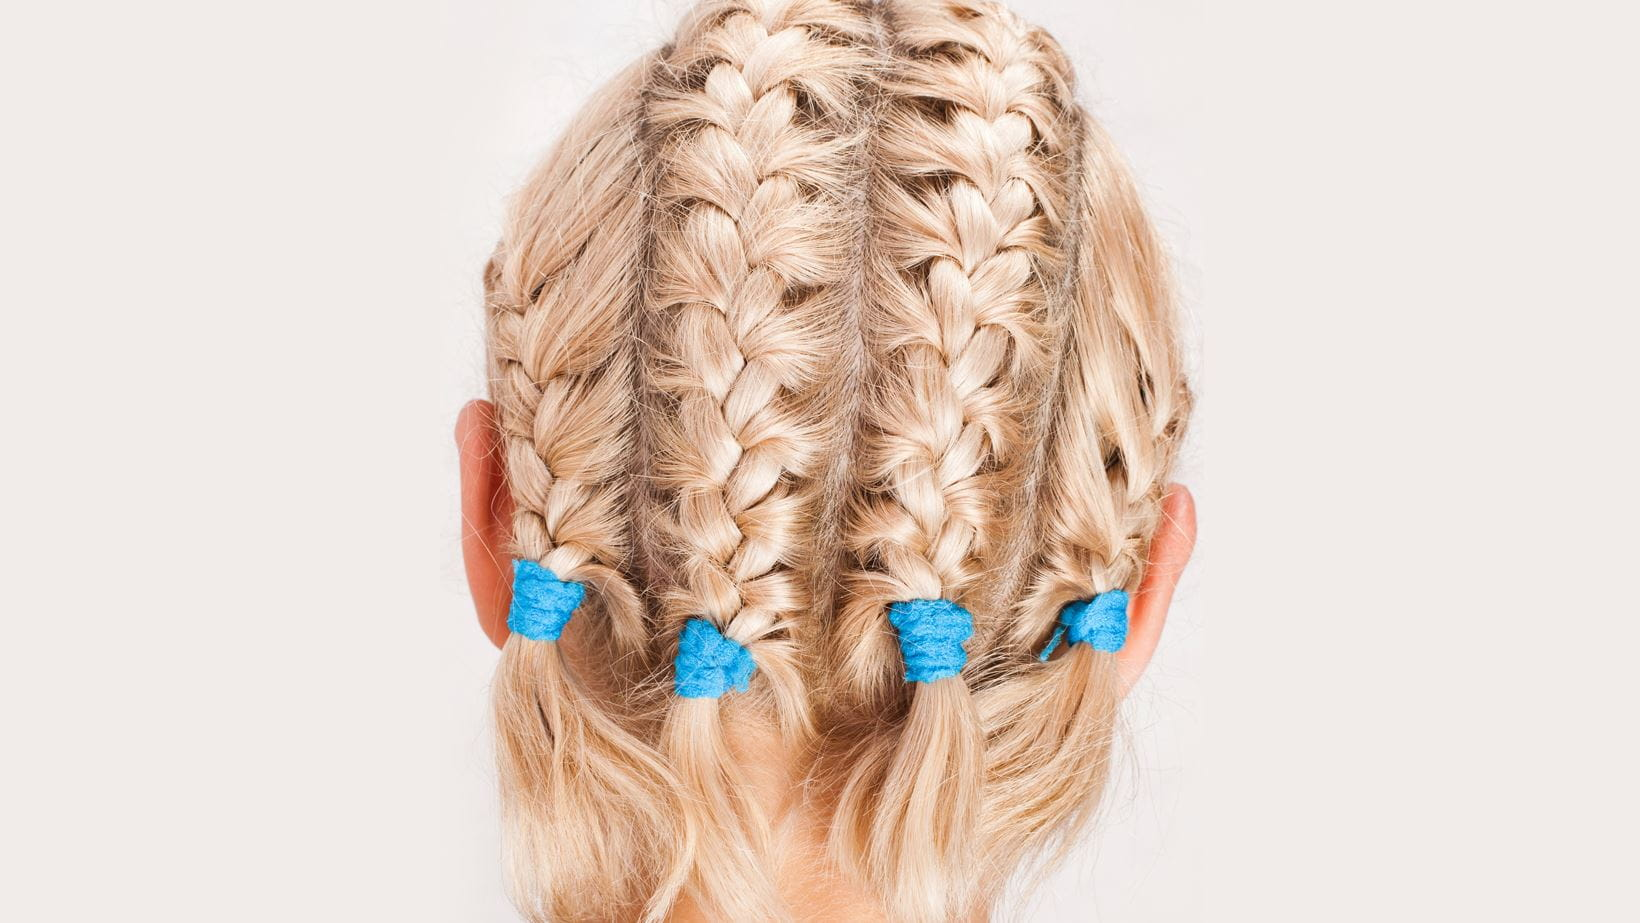 0130_HC_braided_hairstyles_for_every_type_of_hair_intro_3